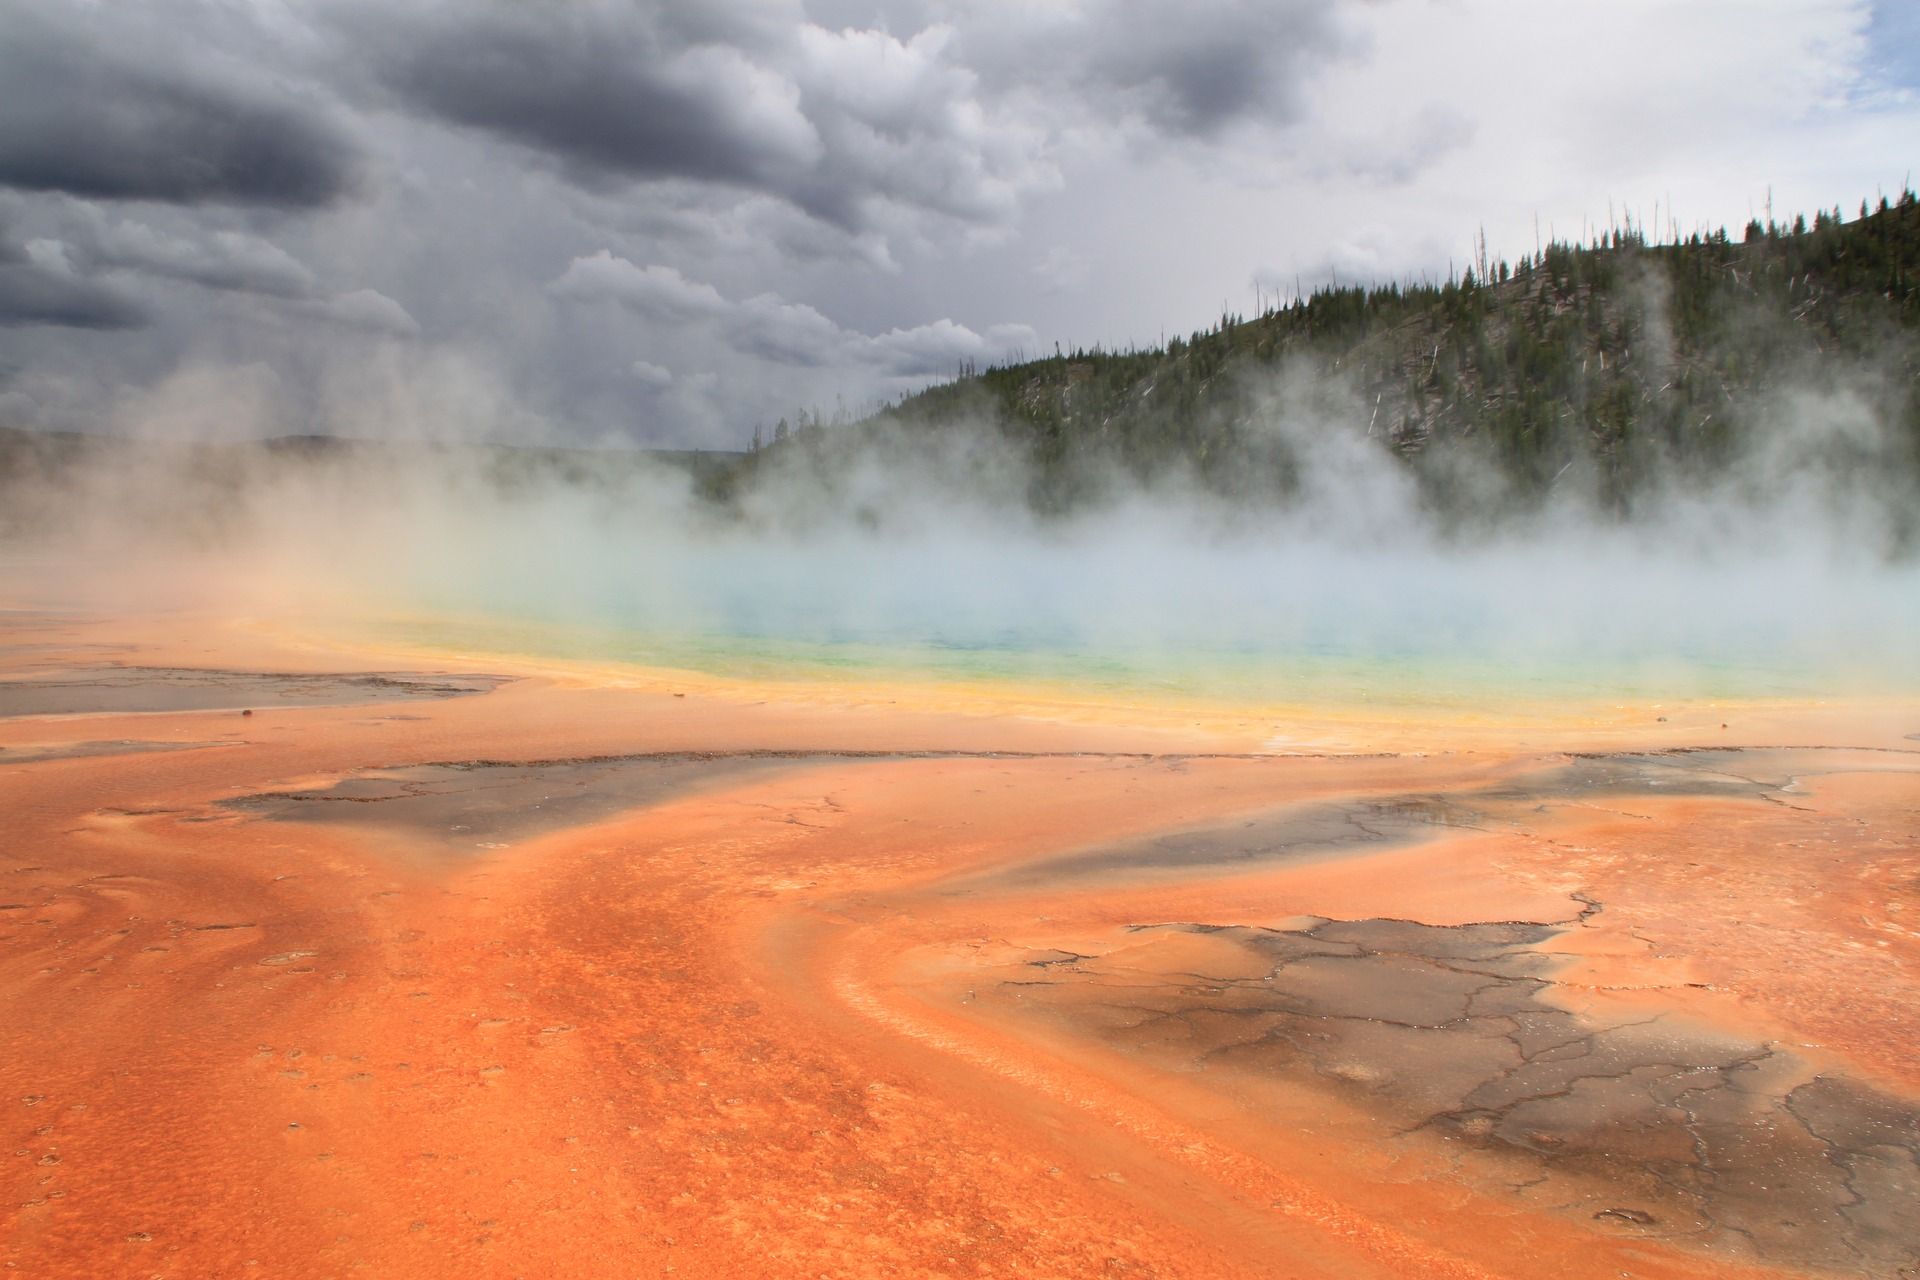 Volcano yellowstone free download